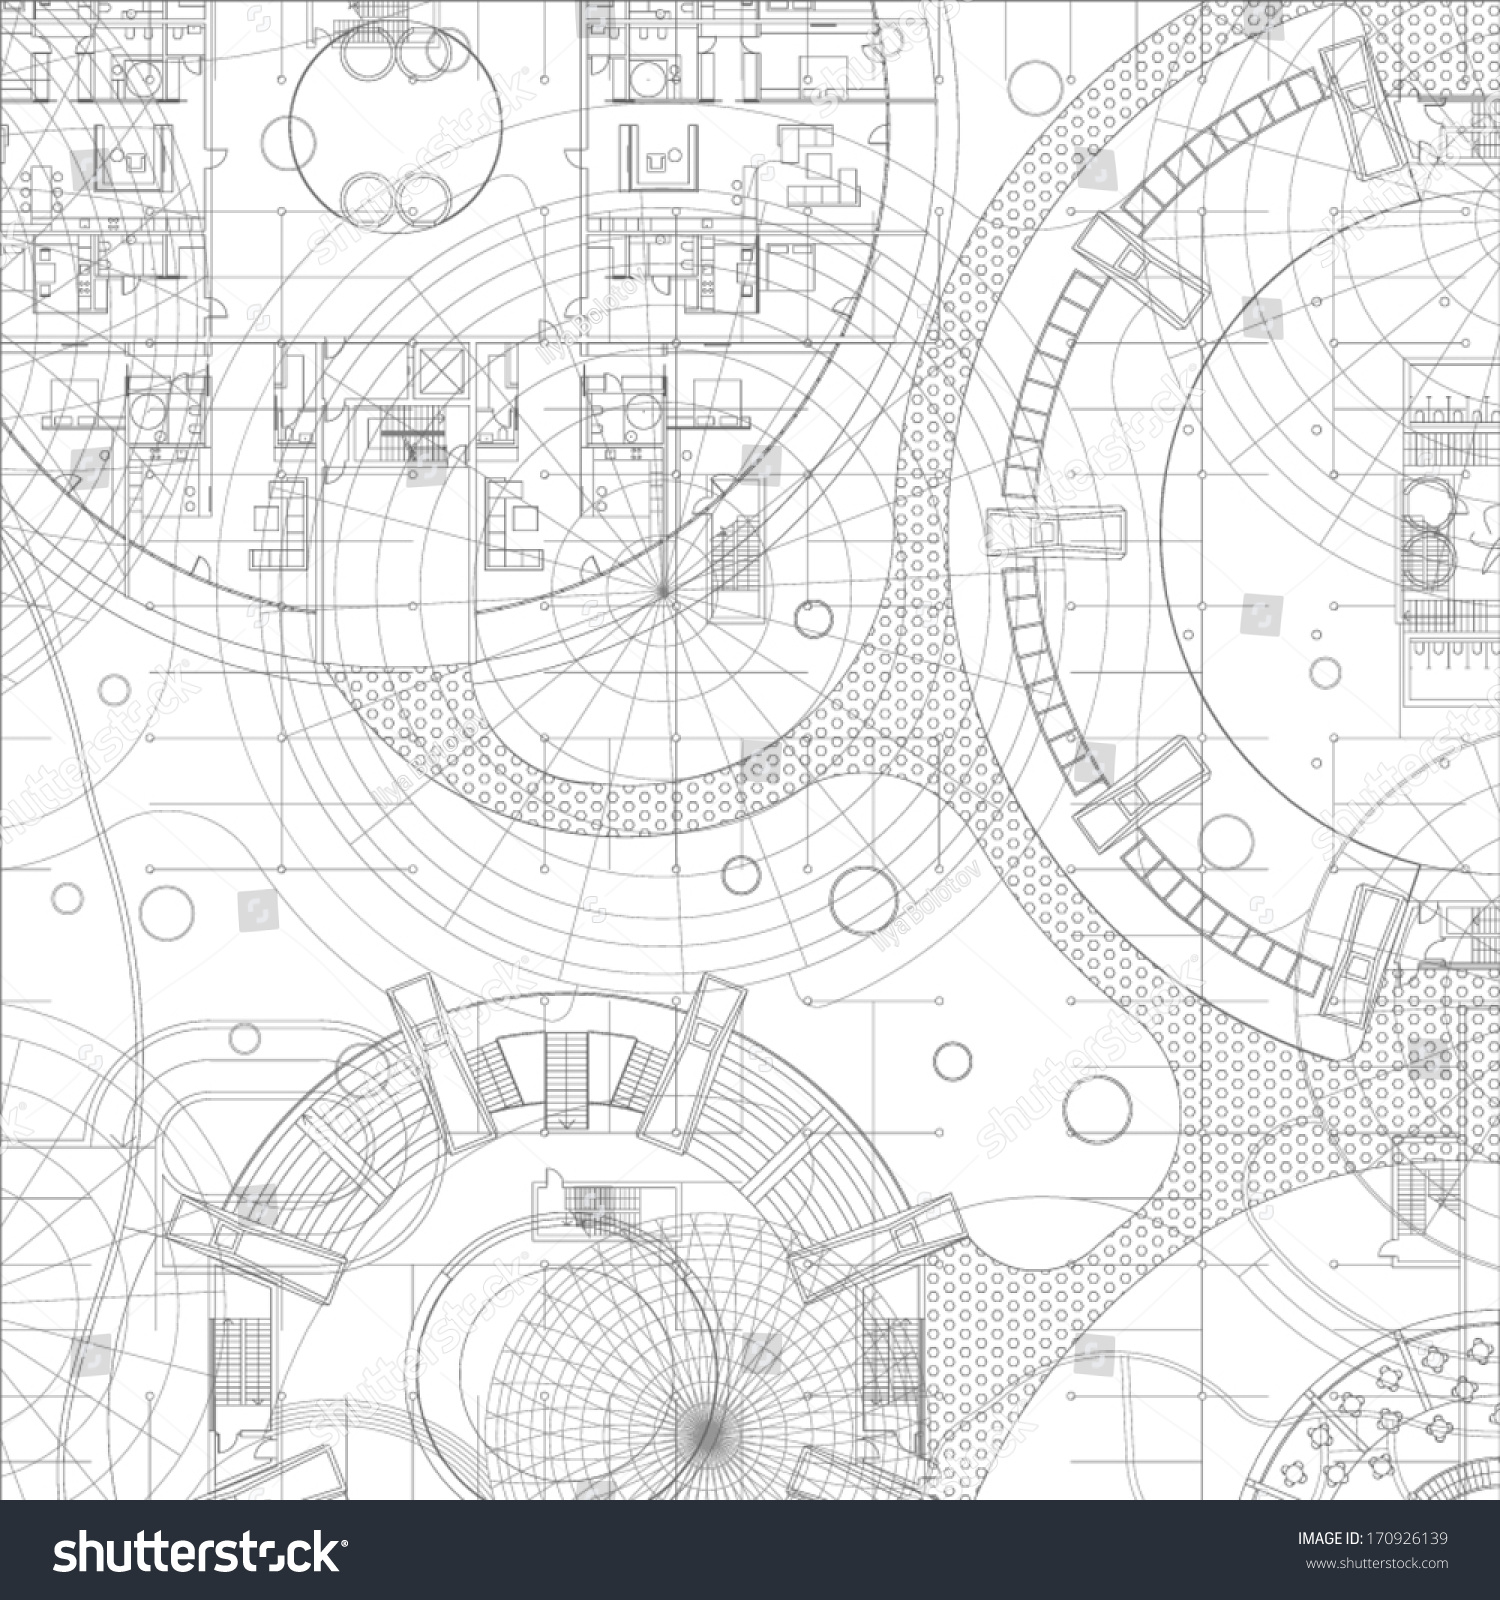 Delighful Architectural Drawing Blueprint Plan In Design